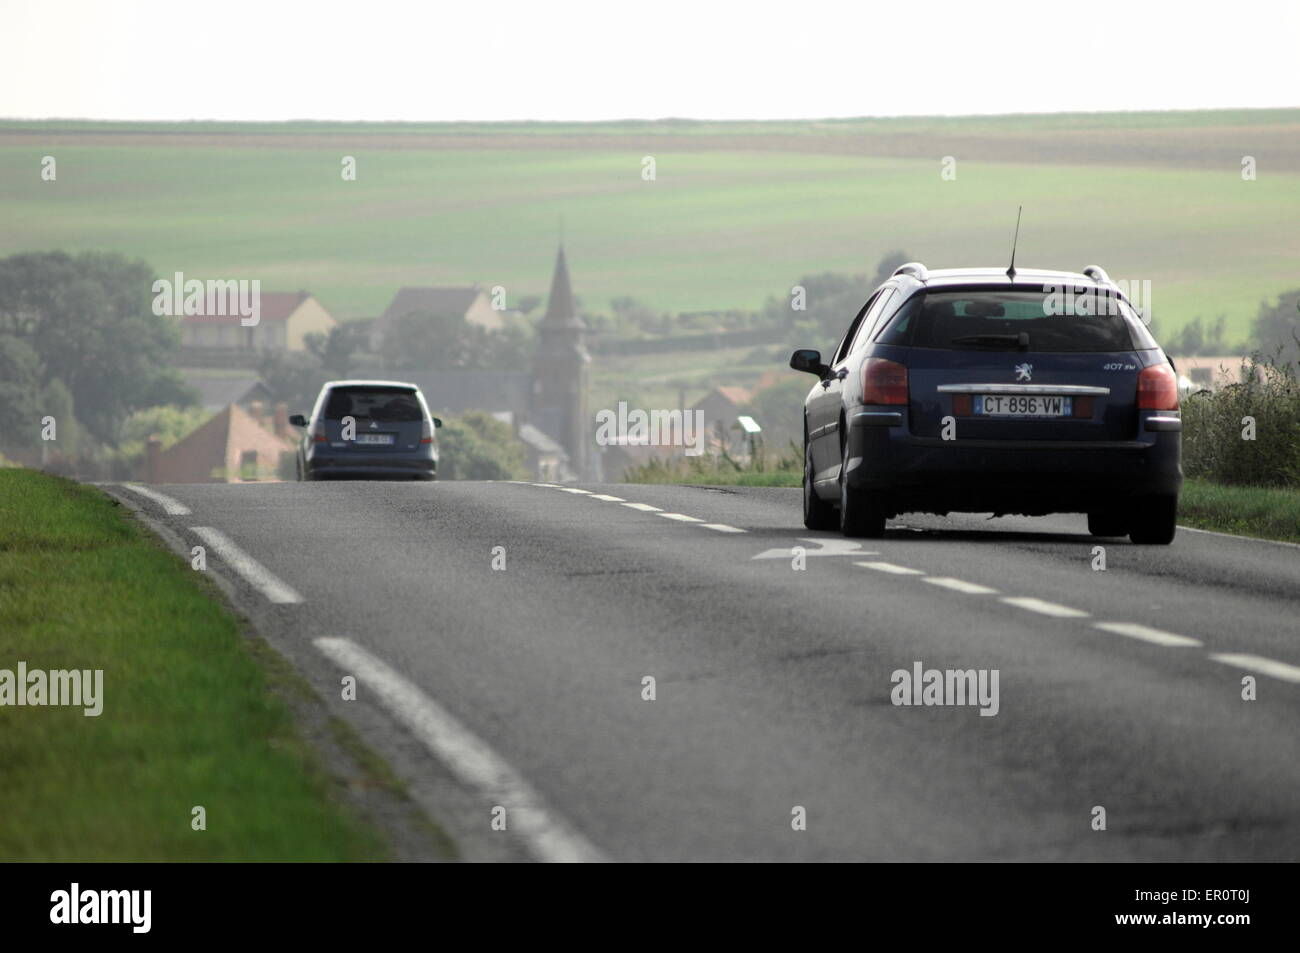 AJAXNETPHOTO. PICARDY, FRANCE. - MOTORING ACROSS THE COUNTRYSIDE ON A ROUTE NATIONALE. PHOTO:JONATHAN EASTLAND/AJAX - Stock Image